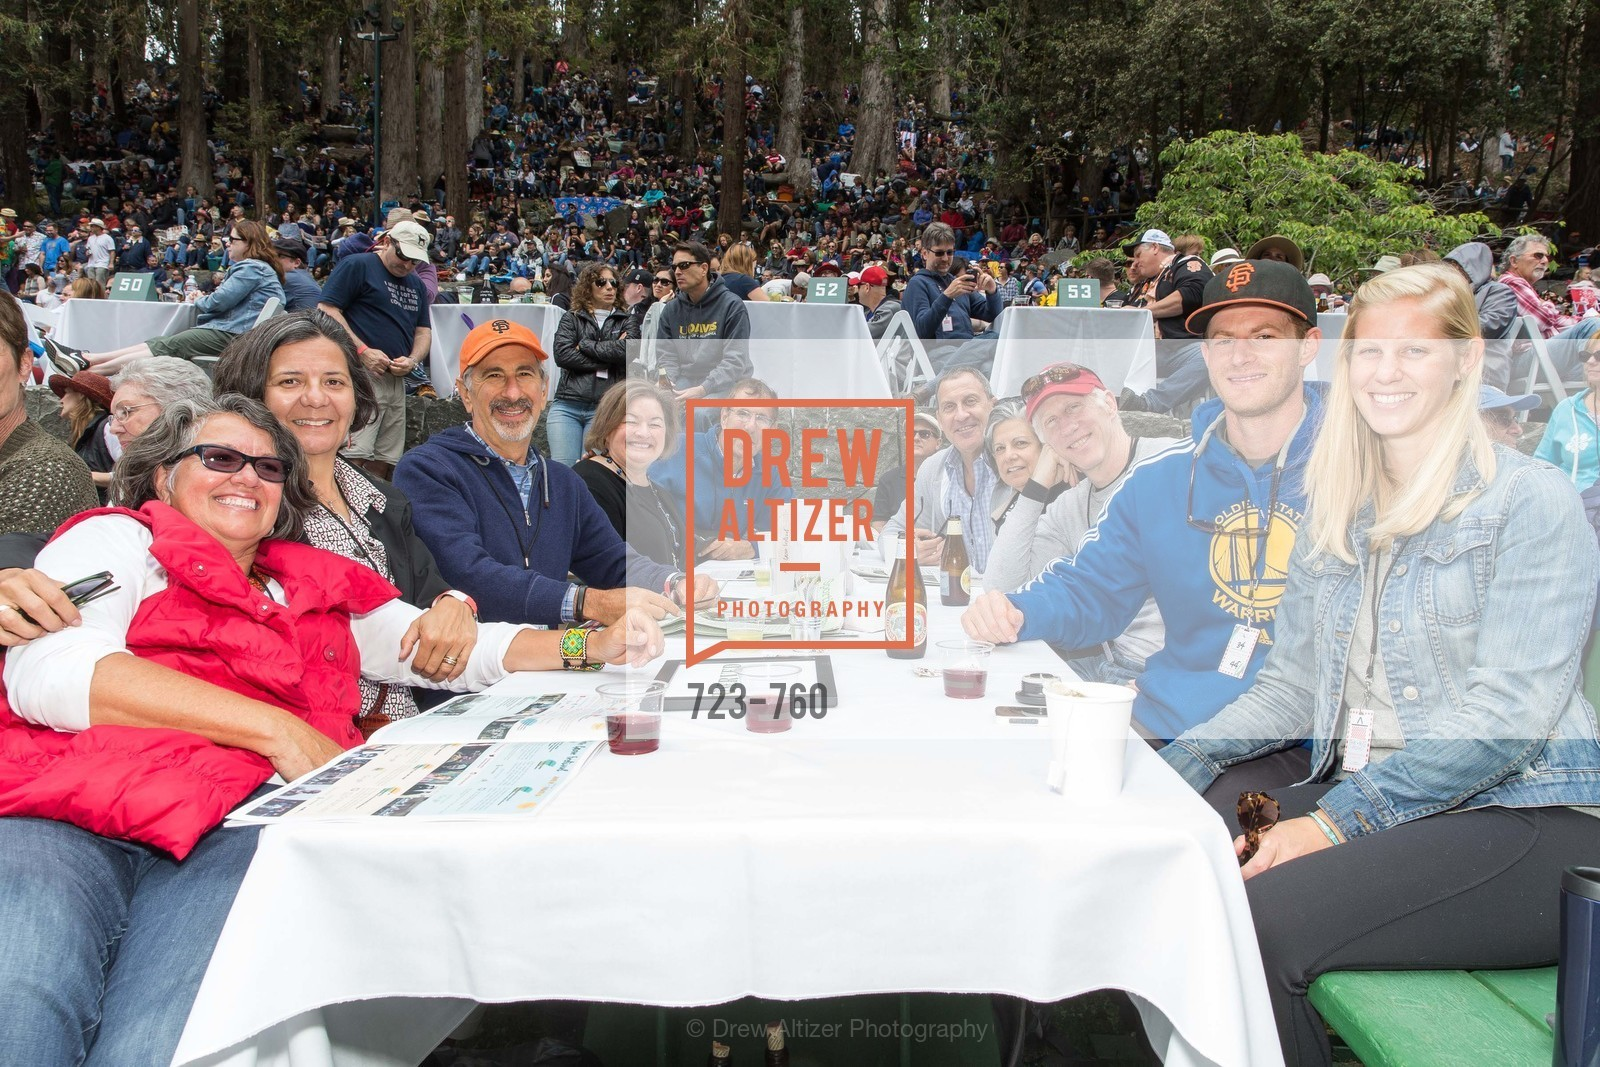 Viviana Paredes, Sandra R. Hernandez, David Friedman, Paulette Meyers, Bob Friedman, The Big Picnic! A Benefit & Concert for STERN GROVE FESTIVAL, US, June 14th, 2015,Drew Altizer, Drew Altizer Photography, full-service agency, private events, San Francisco photographer, photographer california